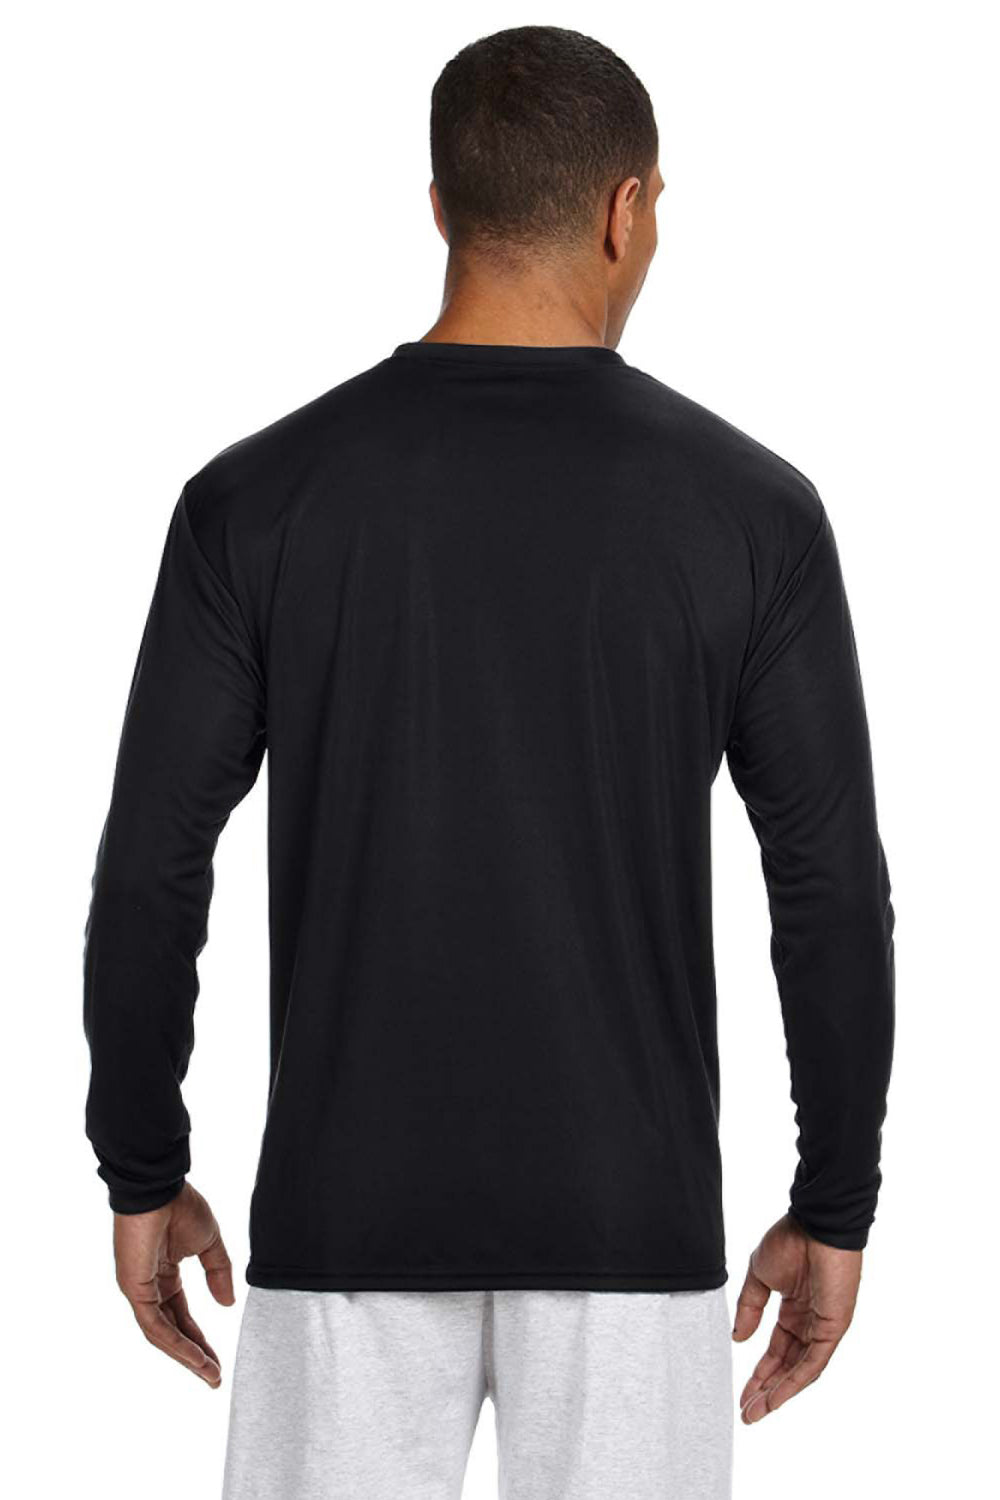 A4 N3165 Mens Cooling Performance Moisture Wicking Long Sleeve Crewneck T-Shirt Black Back